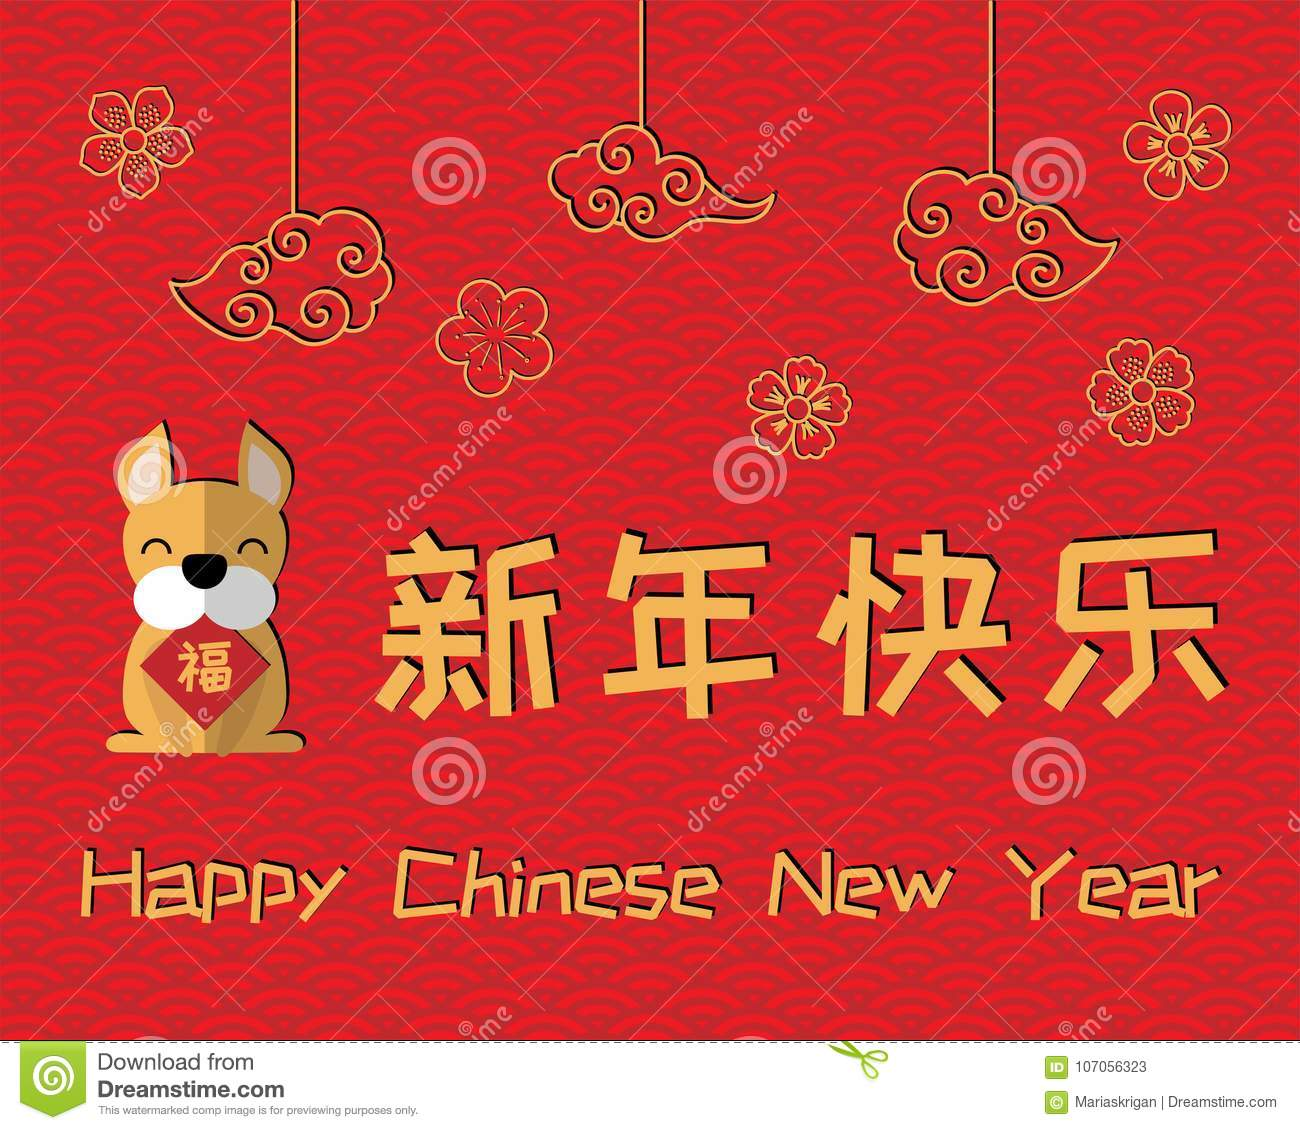 2018 chinese new year greeting card banner with cute funny dog holding card with character fu blessing clouds flowers text translation happy new year